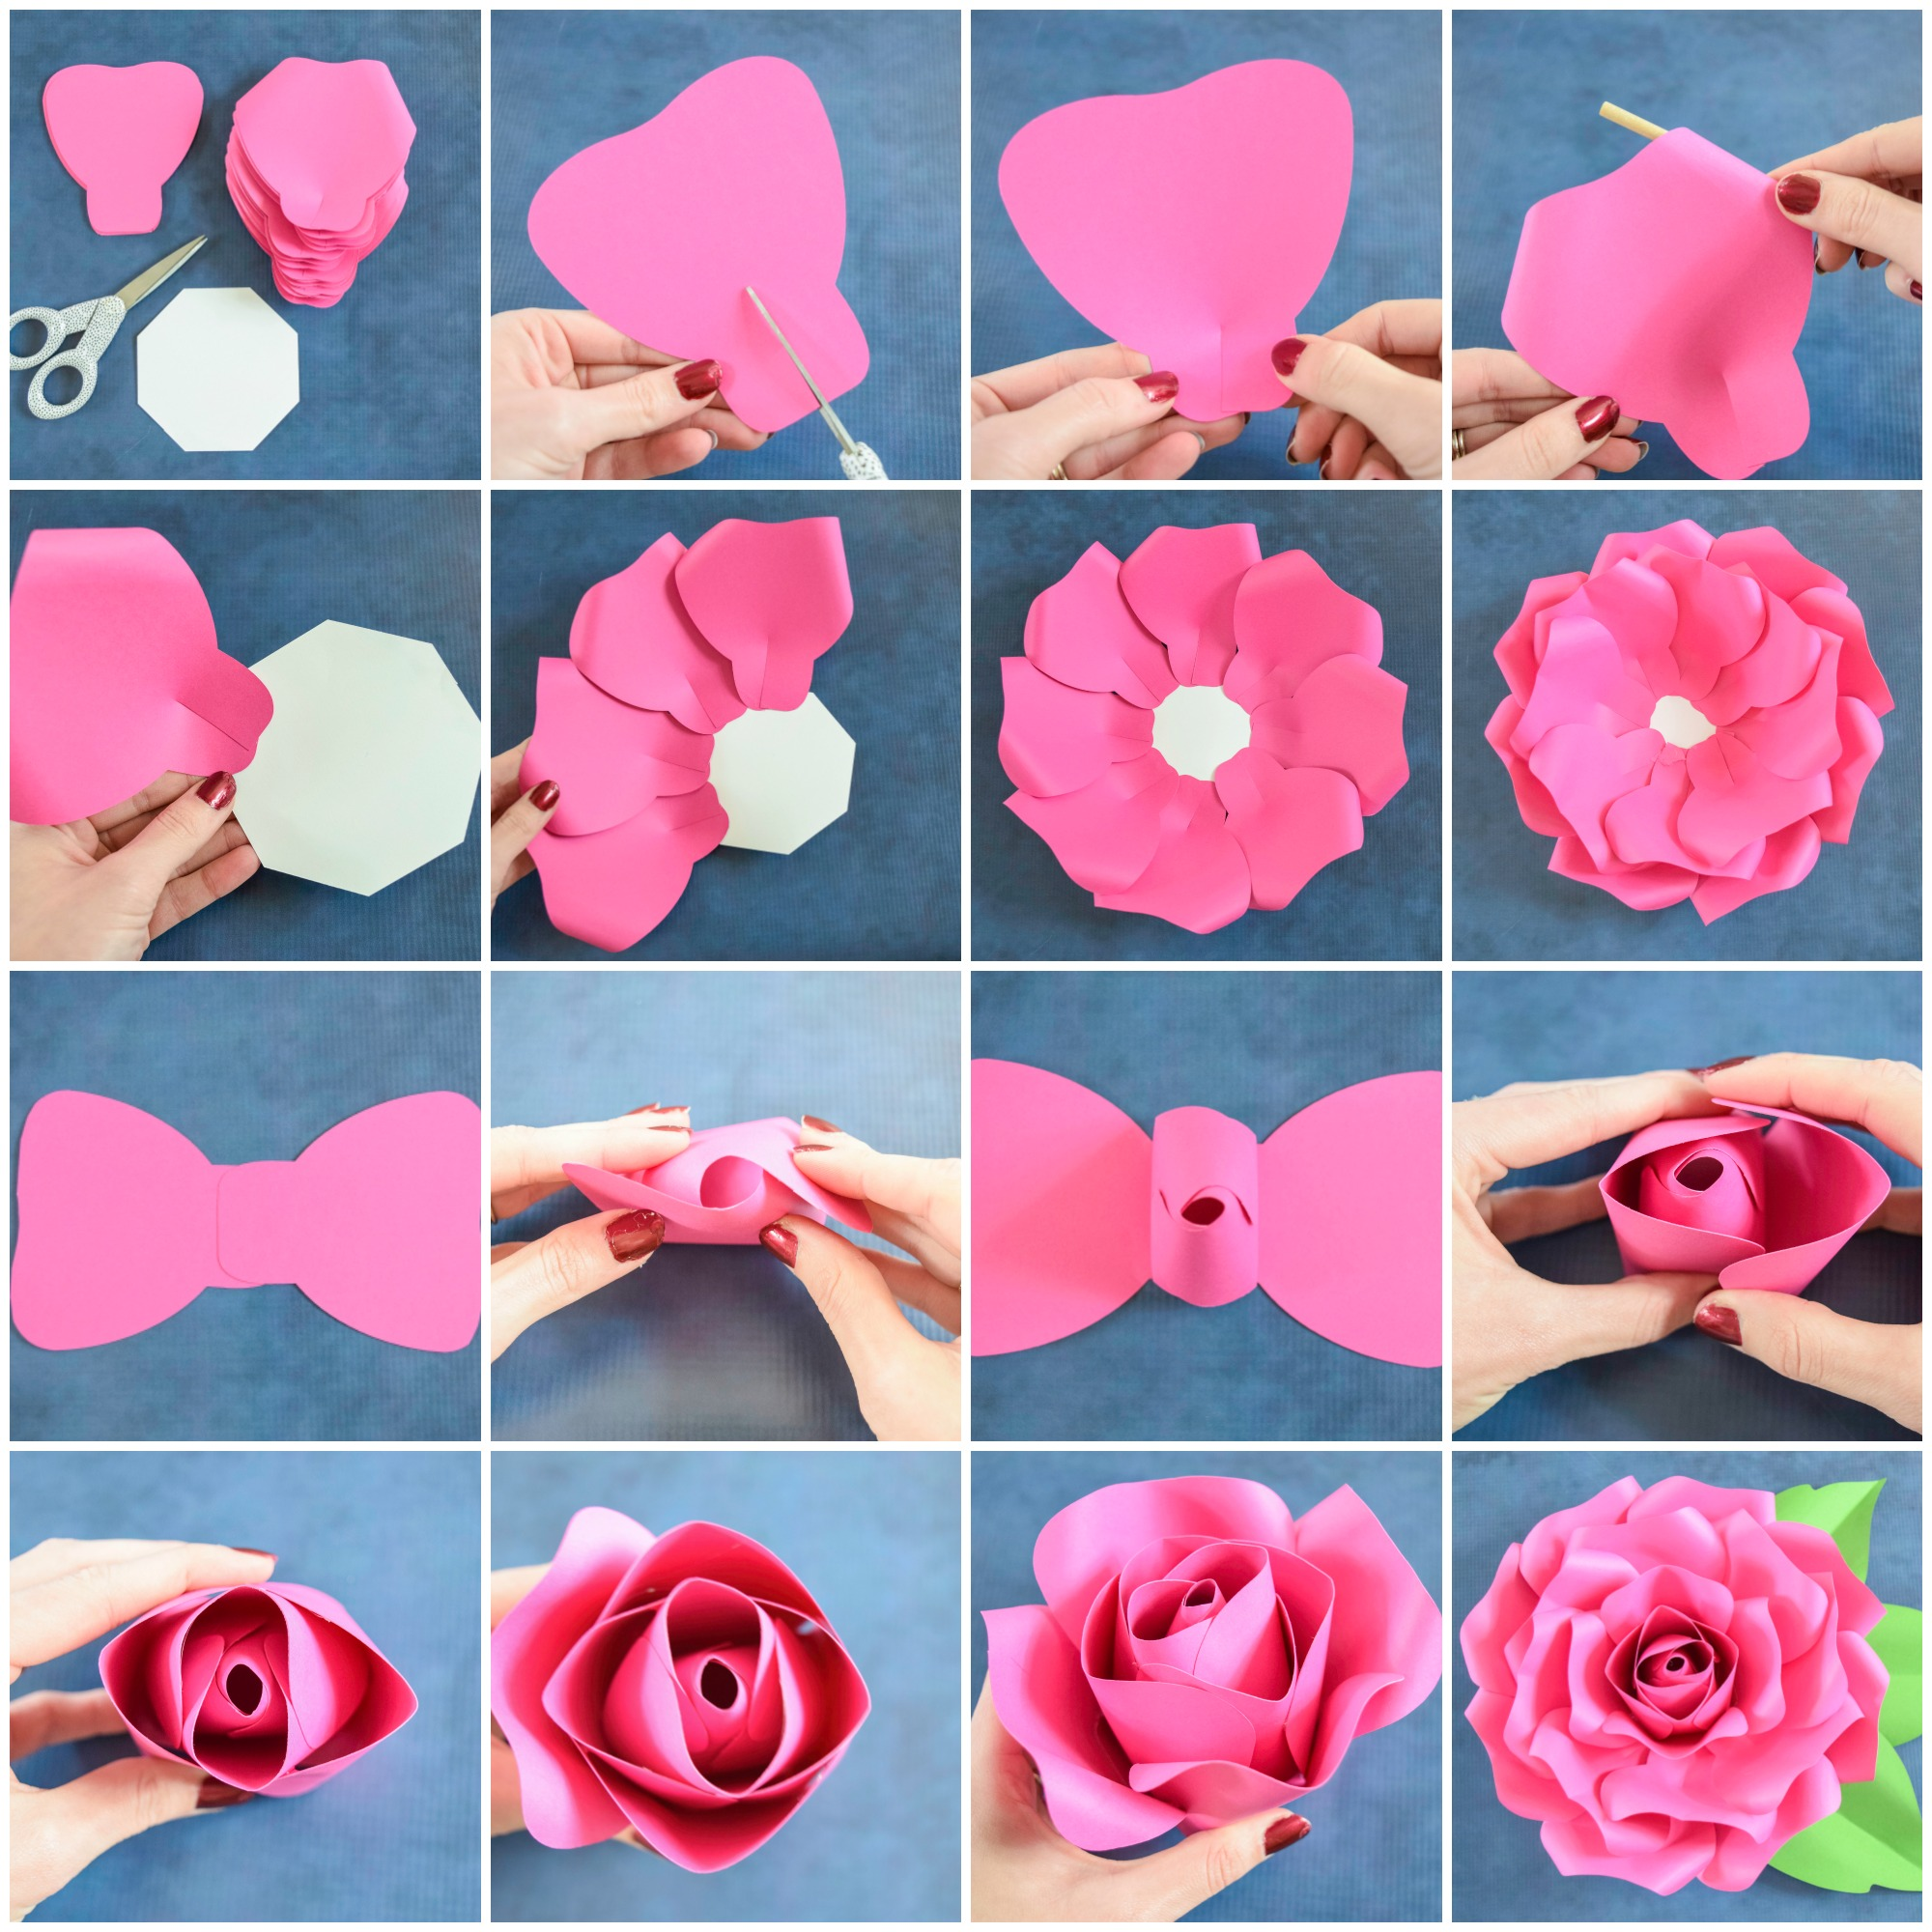 Giant Paper Flowers How To Make Paper Garden Roses With Step By Step